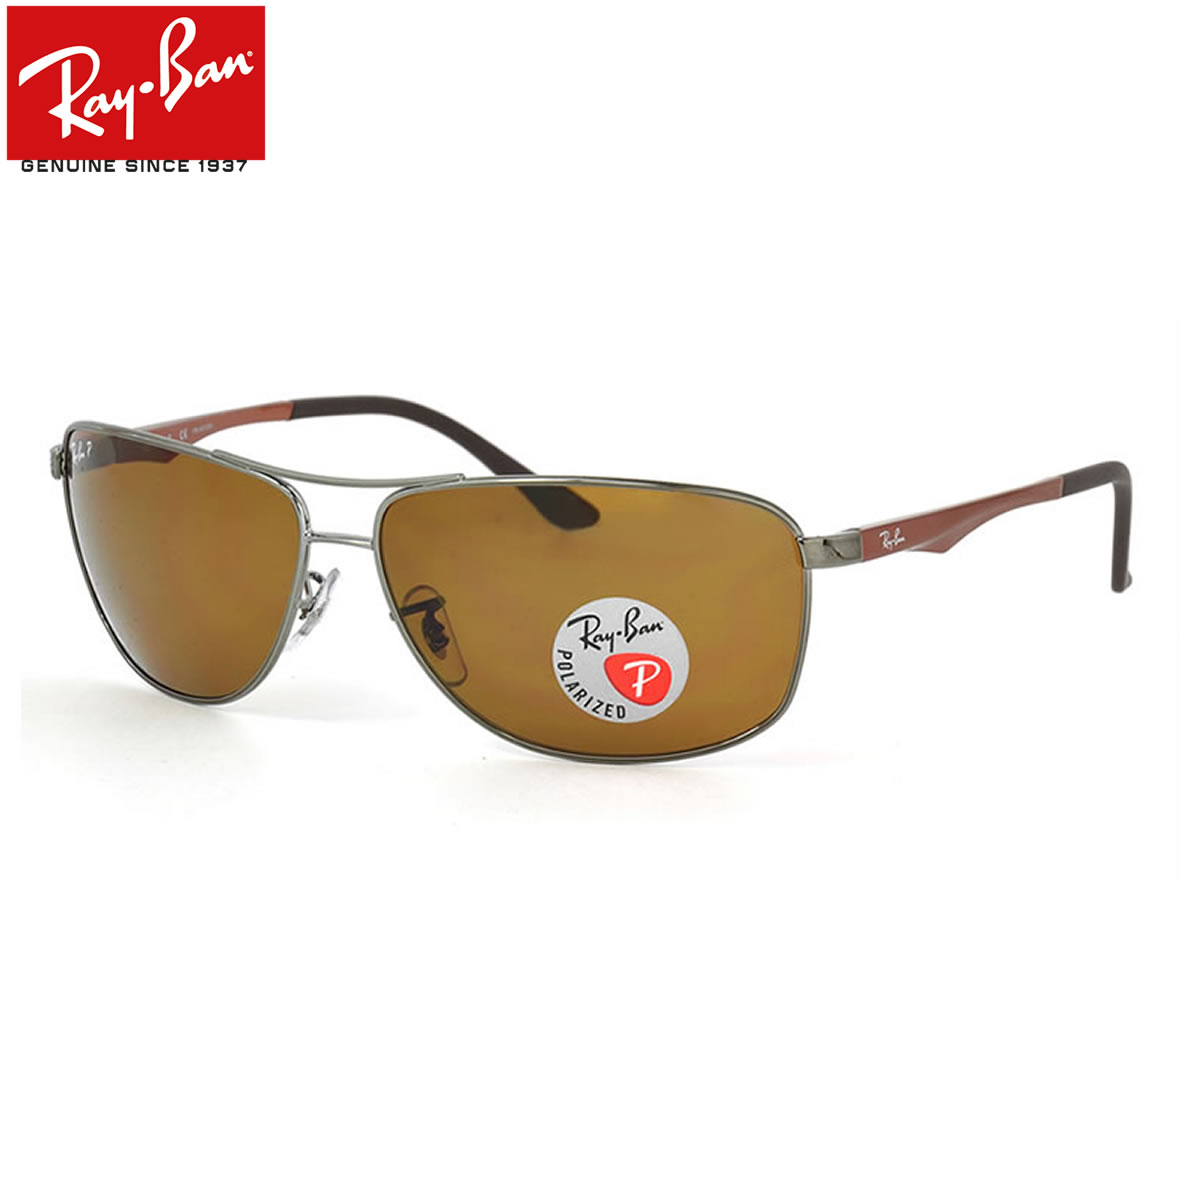 698c4a5f7c32 Are Ray Ban Sunglasses On Ebay Fake Yeezys